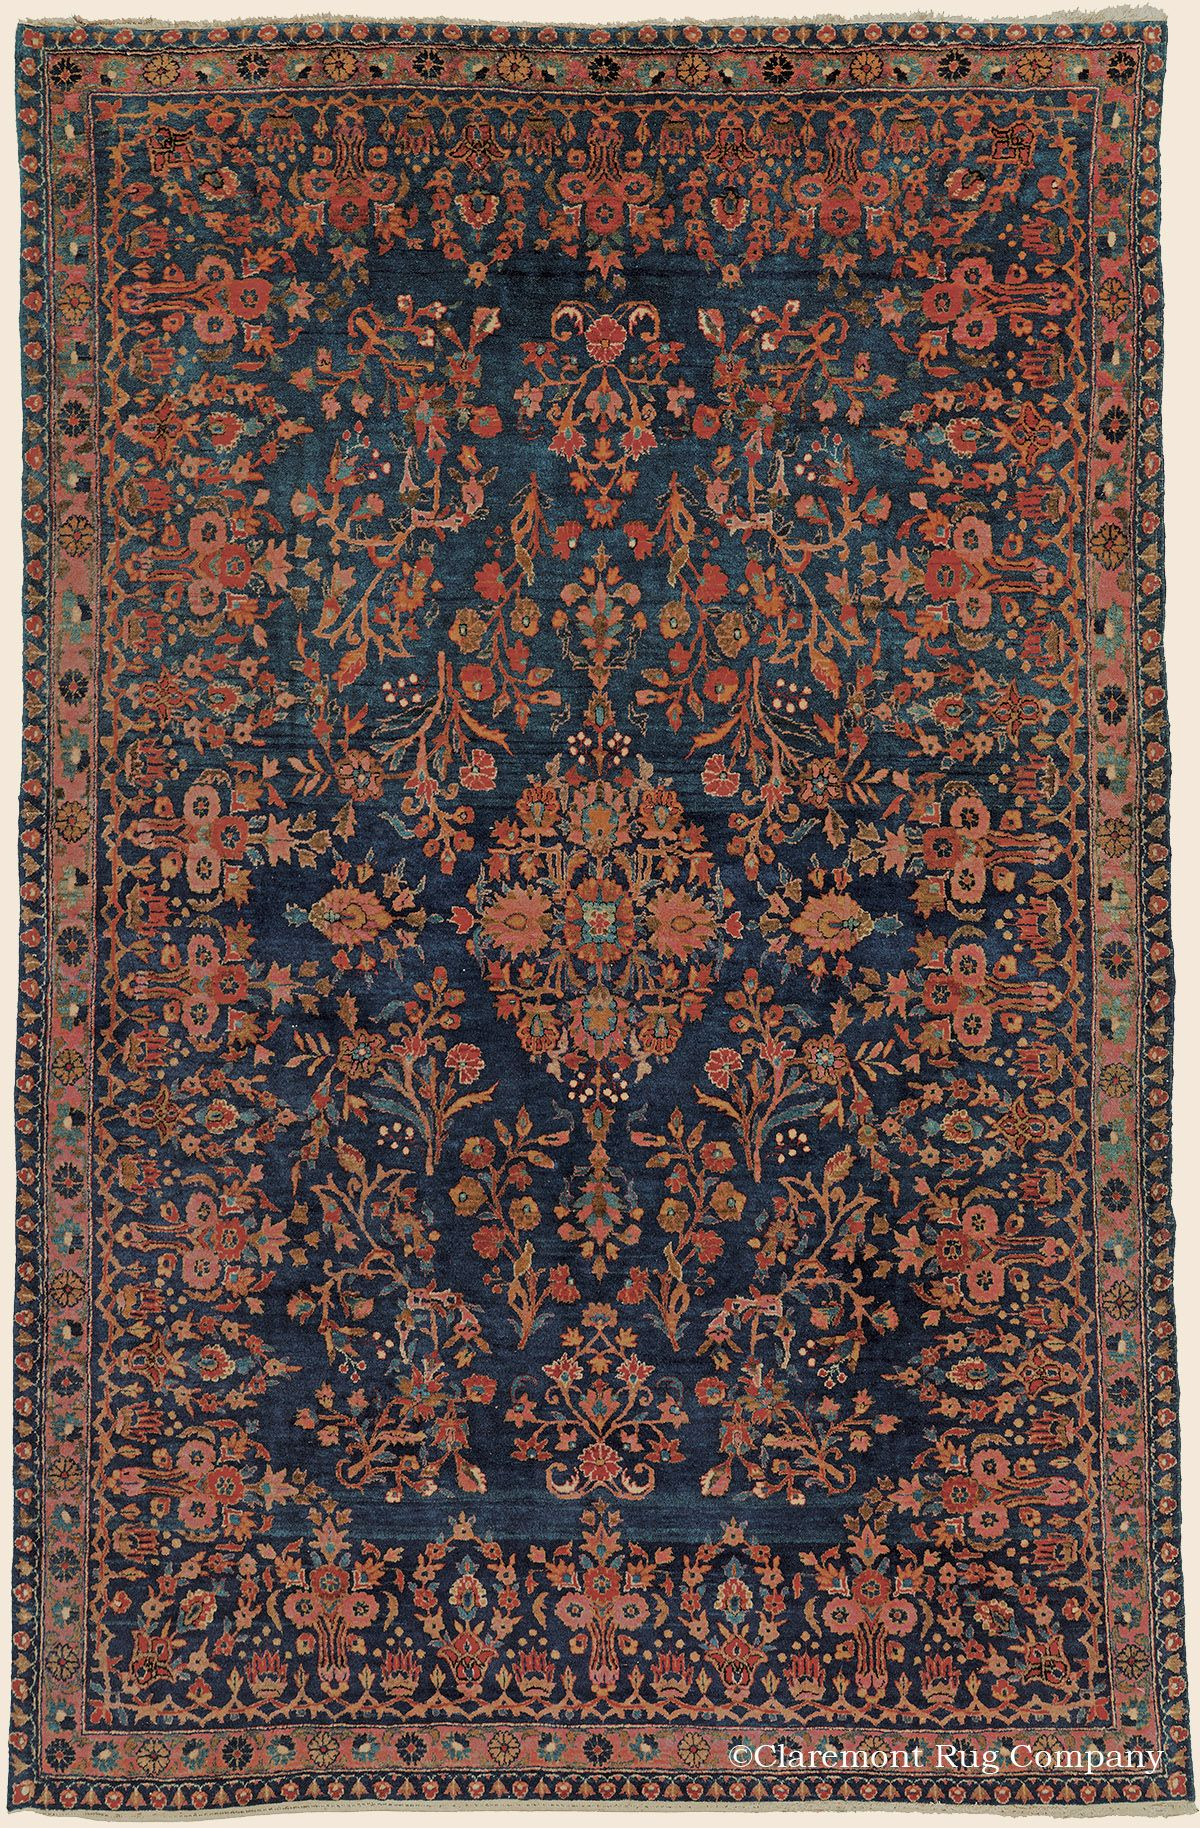 Antique Circa 1900 High Decorative Central Persian Manchester Kashan Rug 4 4 X 6 7 Price 9 800 Cl Rugs On Carpet Claremont Rug Company Antique Carpets